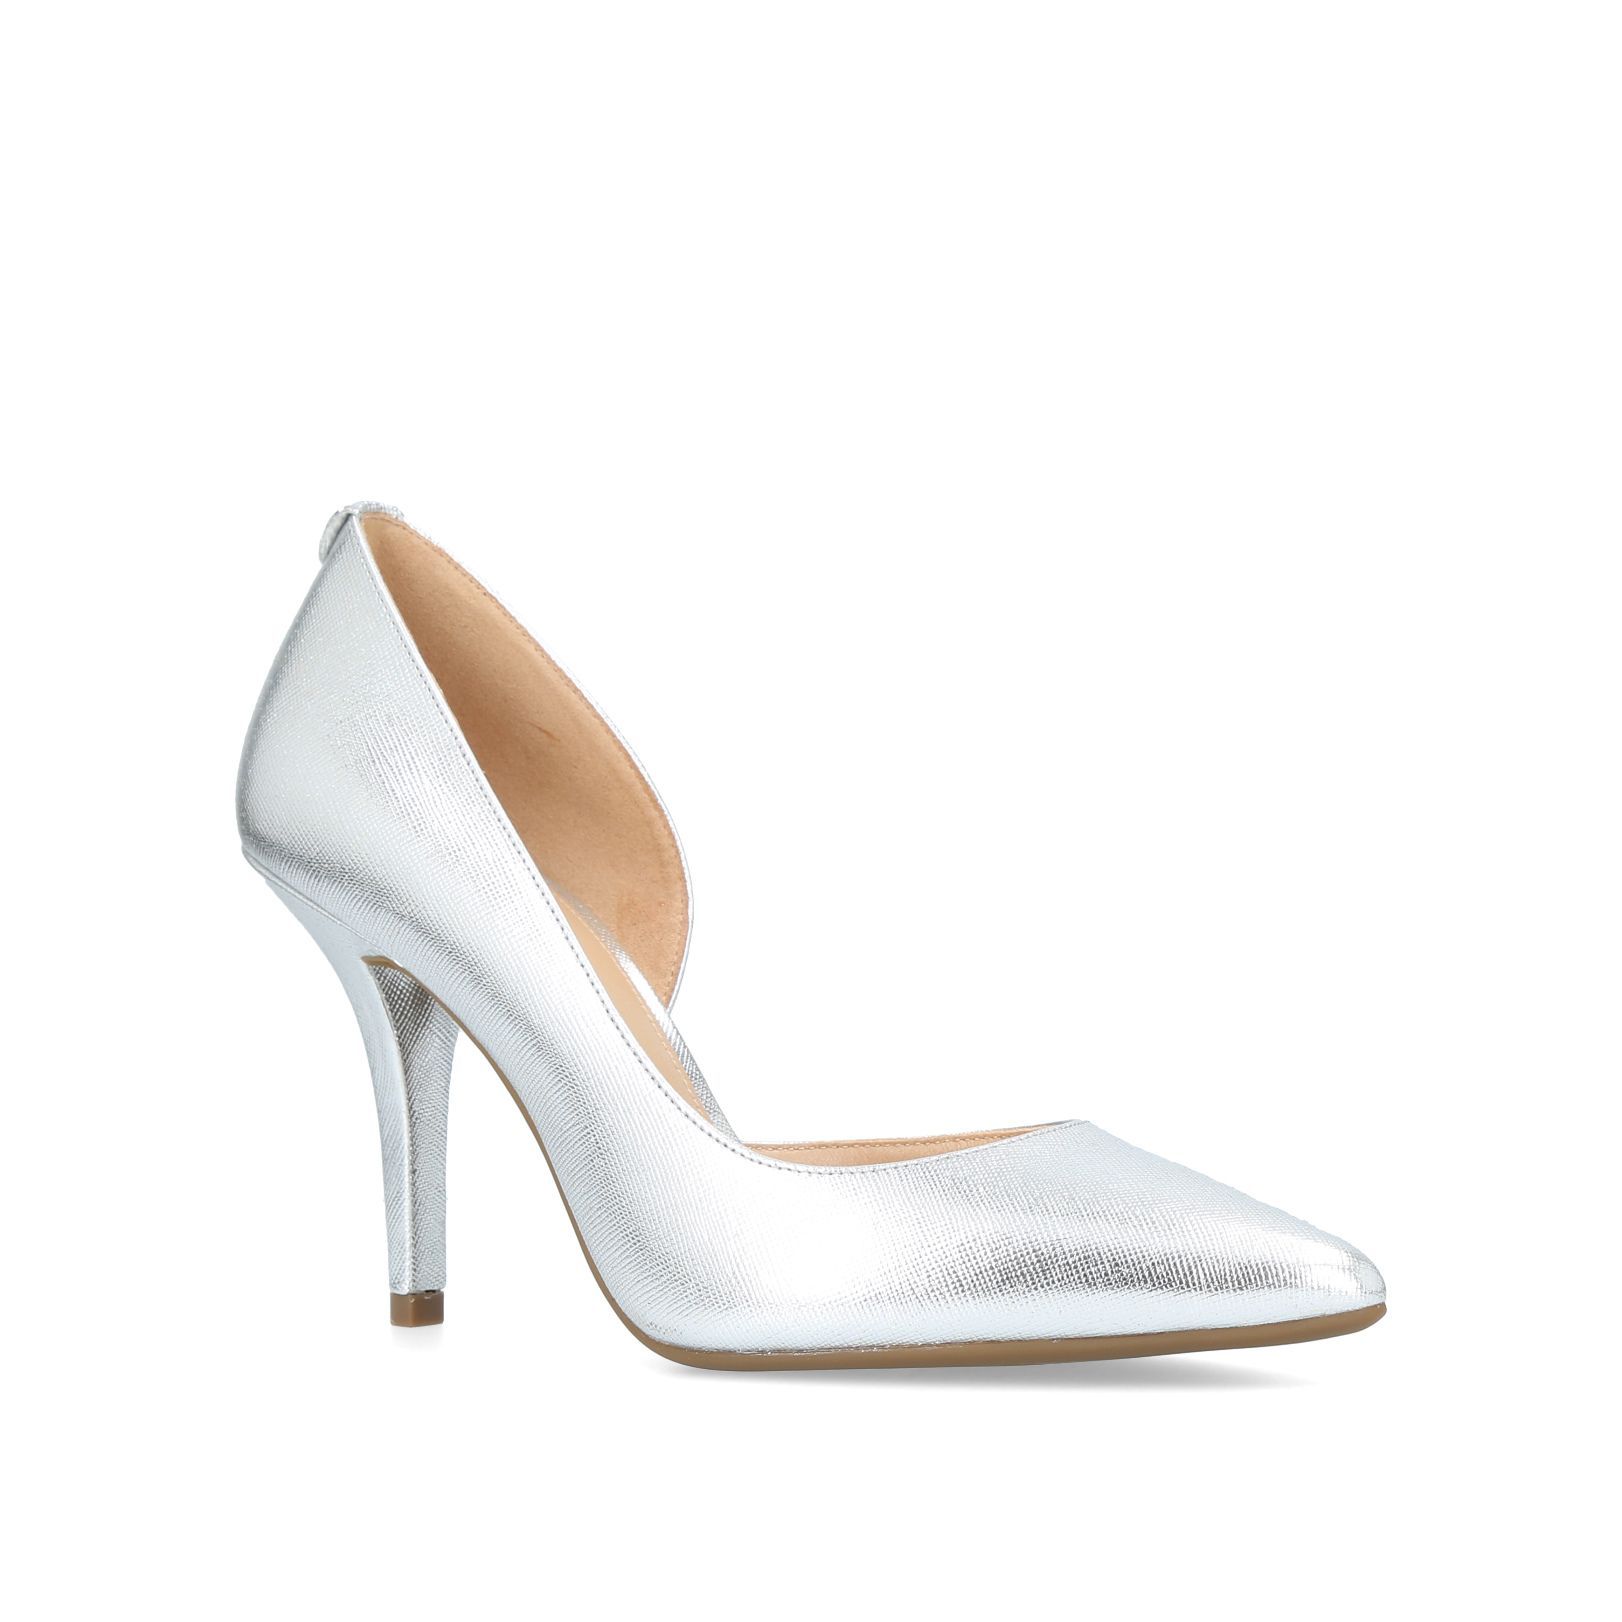 Michael Kors Nathalie Flex High Pump Courts, Silver